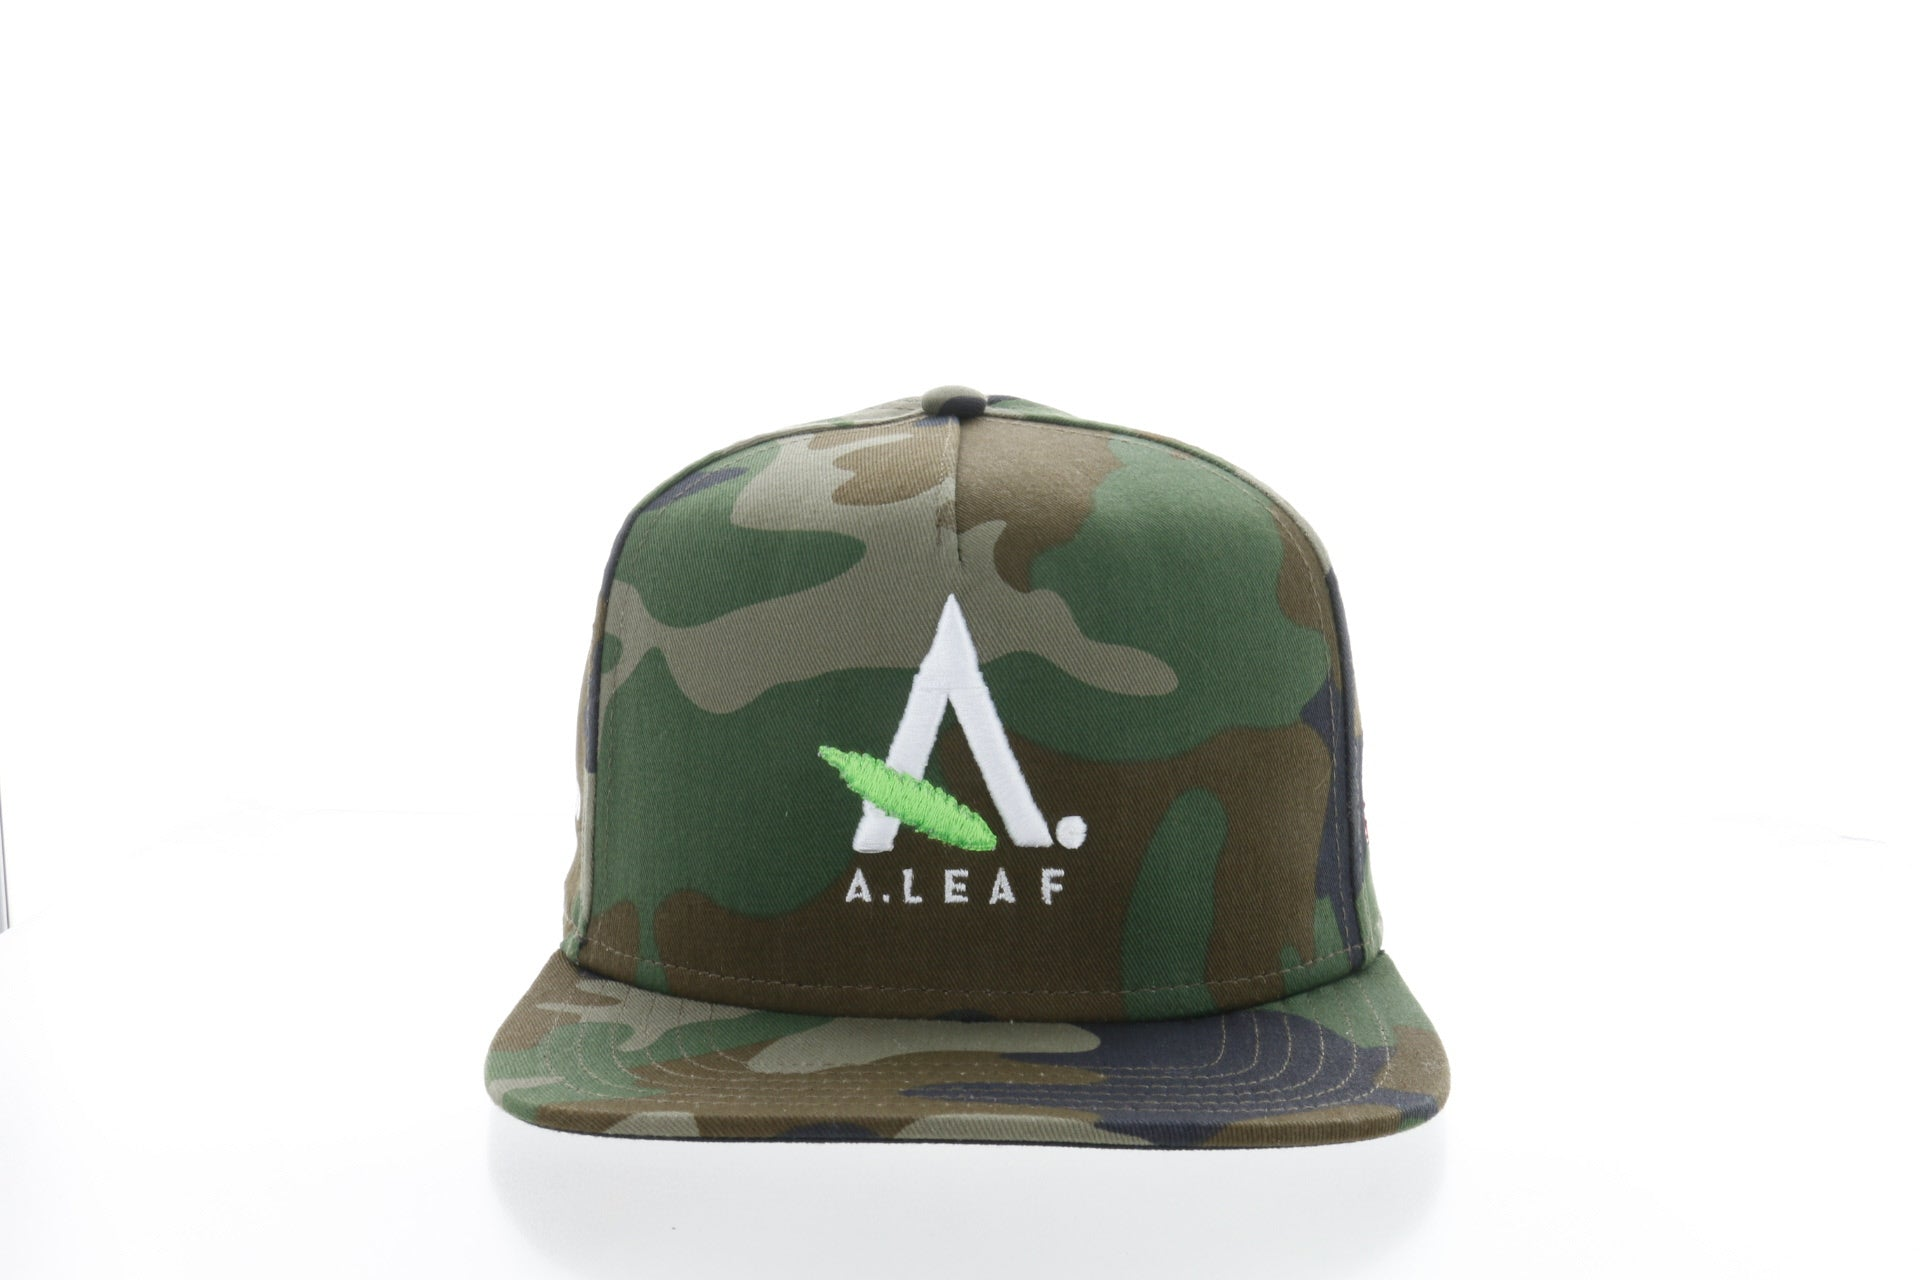 A.LEAF snap back hat - Camo